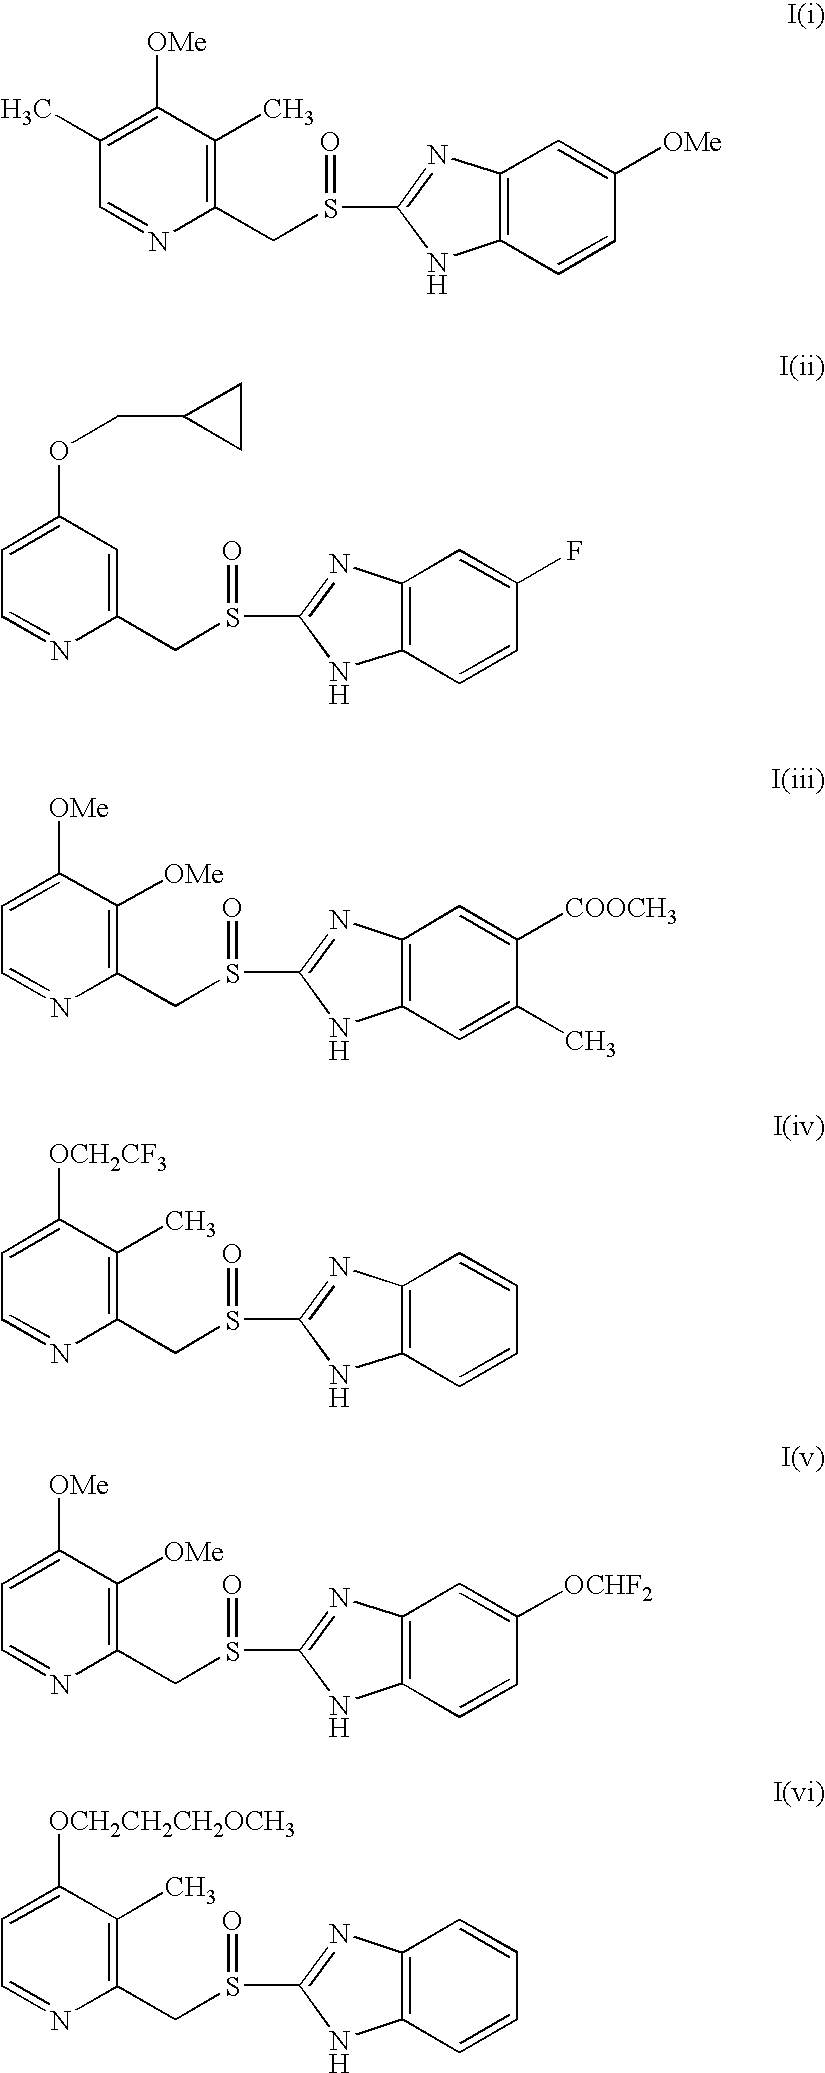 reaction form synthesis of isopentyl acetate The program emphasizes on the integrated chemistry education by applying theoretical chemistry concepts to practical applications and to the challenges posed by.